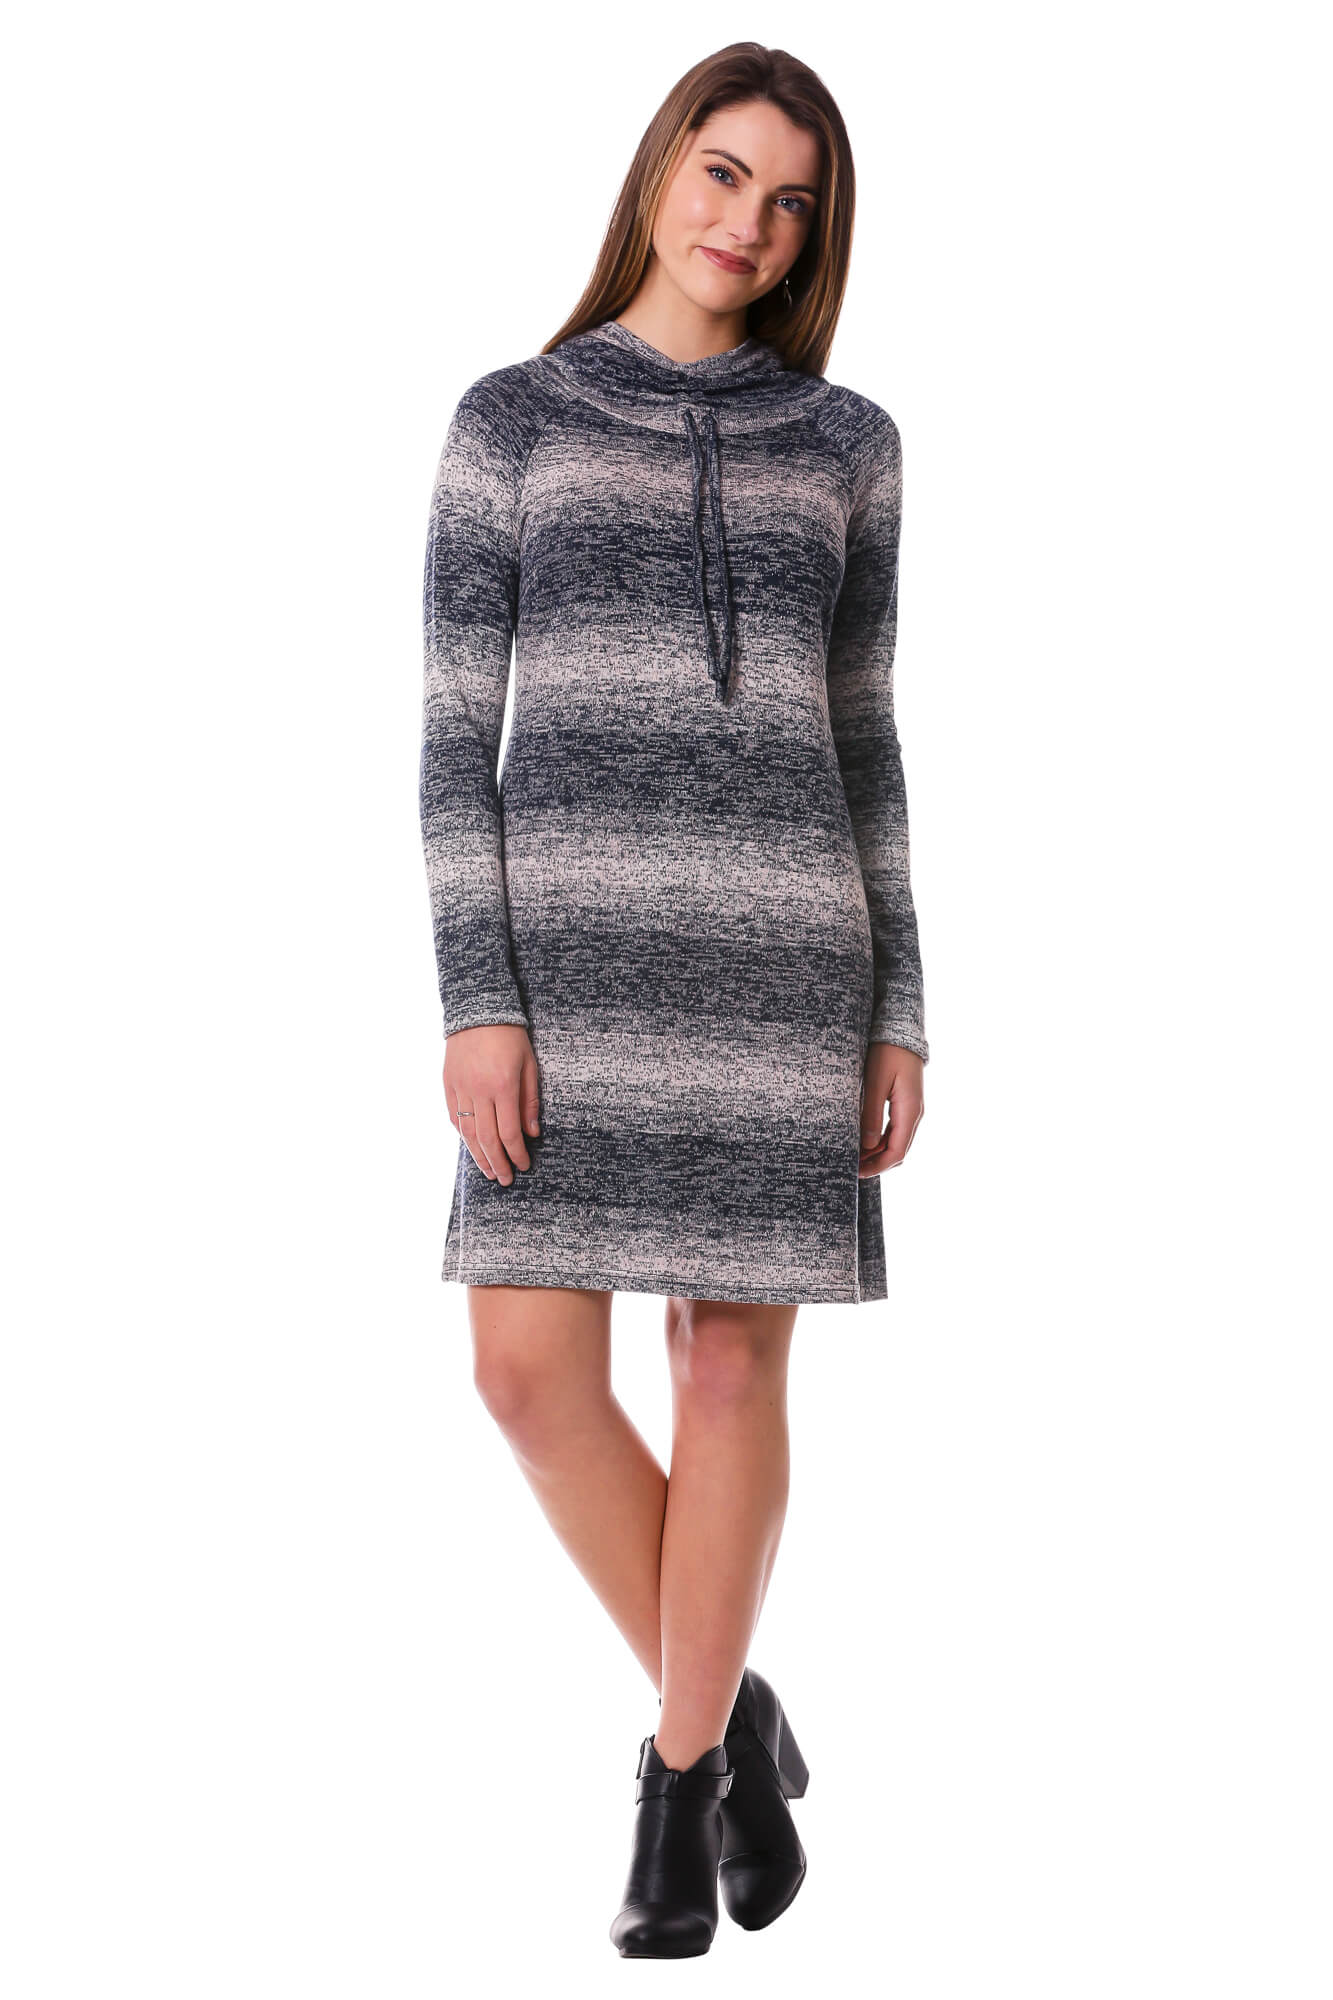 Women's Navy Striped Hoodie Sweater Dress with Cowl Neck | Neesha